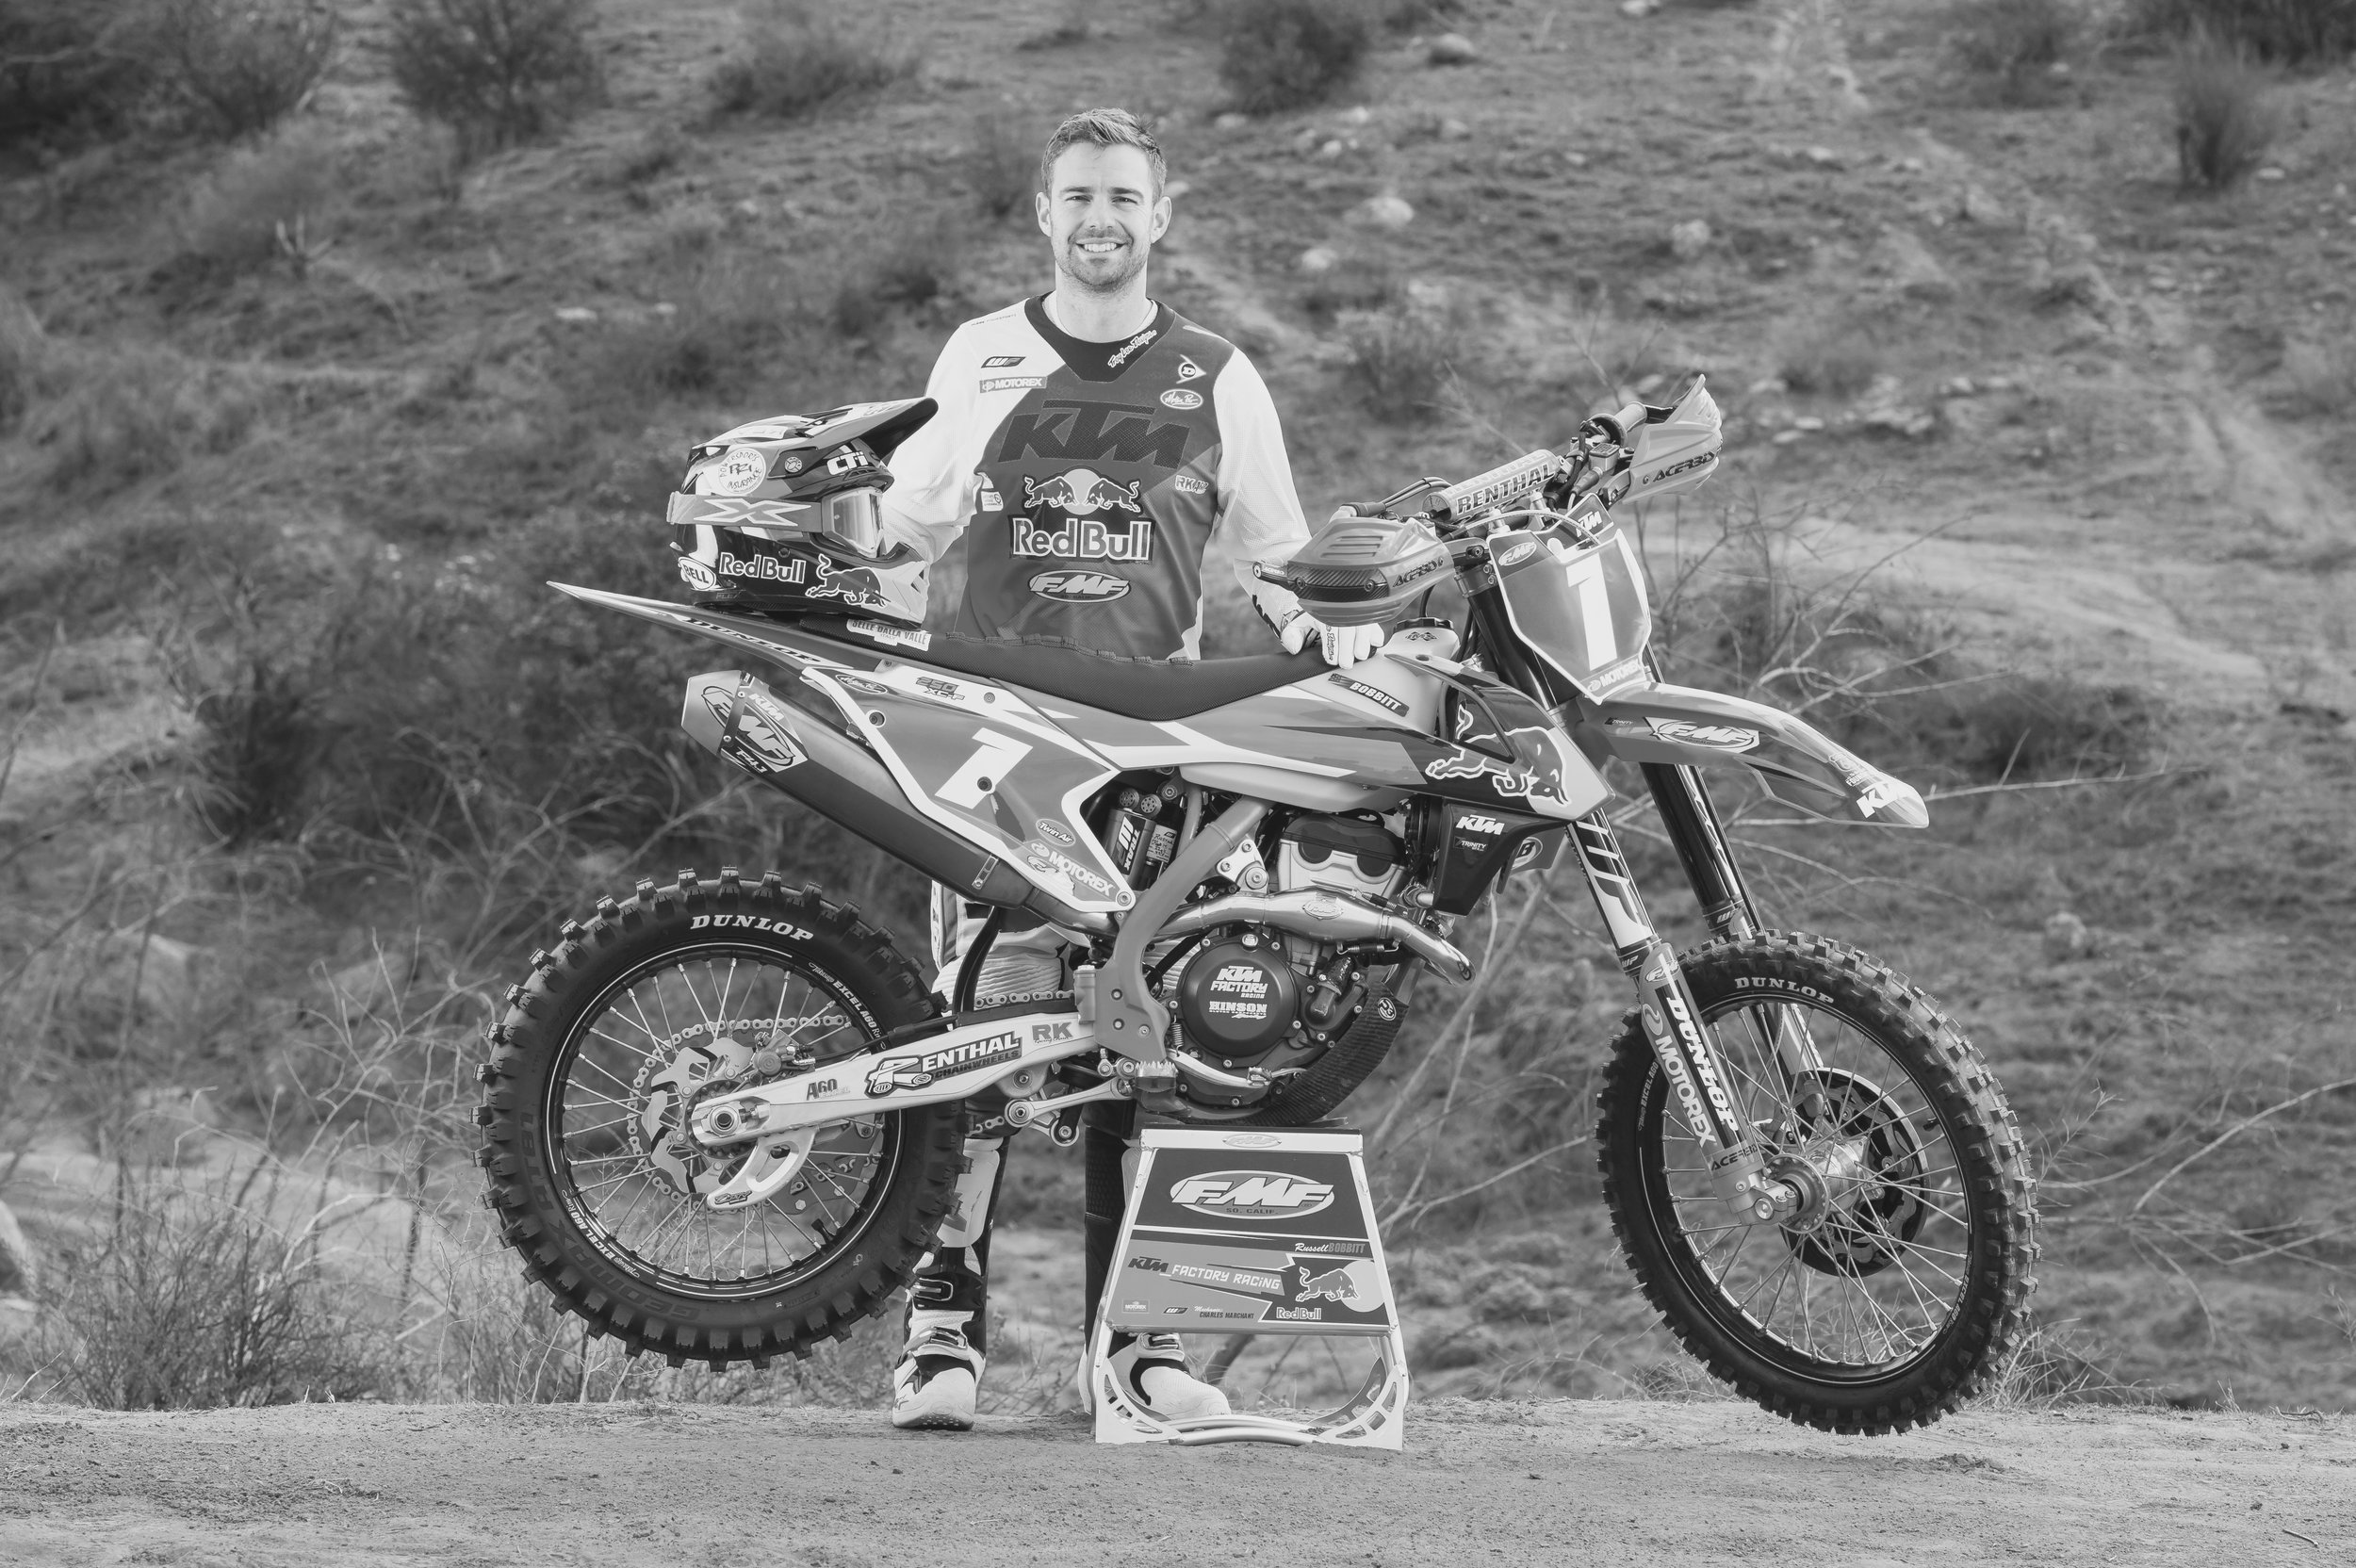 Russell Bobbitt    Five-time National Enduro Champion    10 Consecutive years as a factory racer    7 time ISDE participant (4 gold medals, 3 silver medals)    2017 Powerline Park GNCC 3rd Overall    Instagram follower: 15,400+